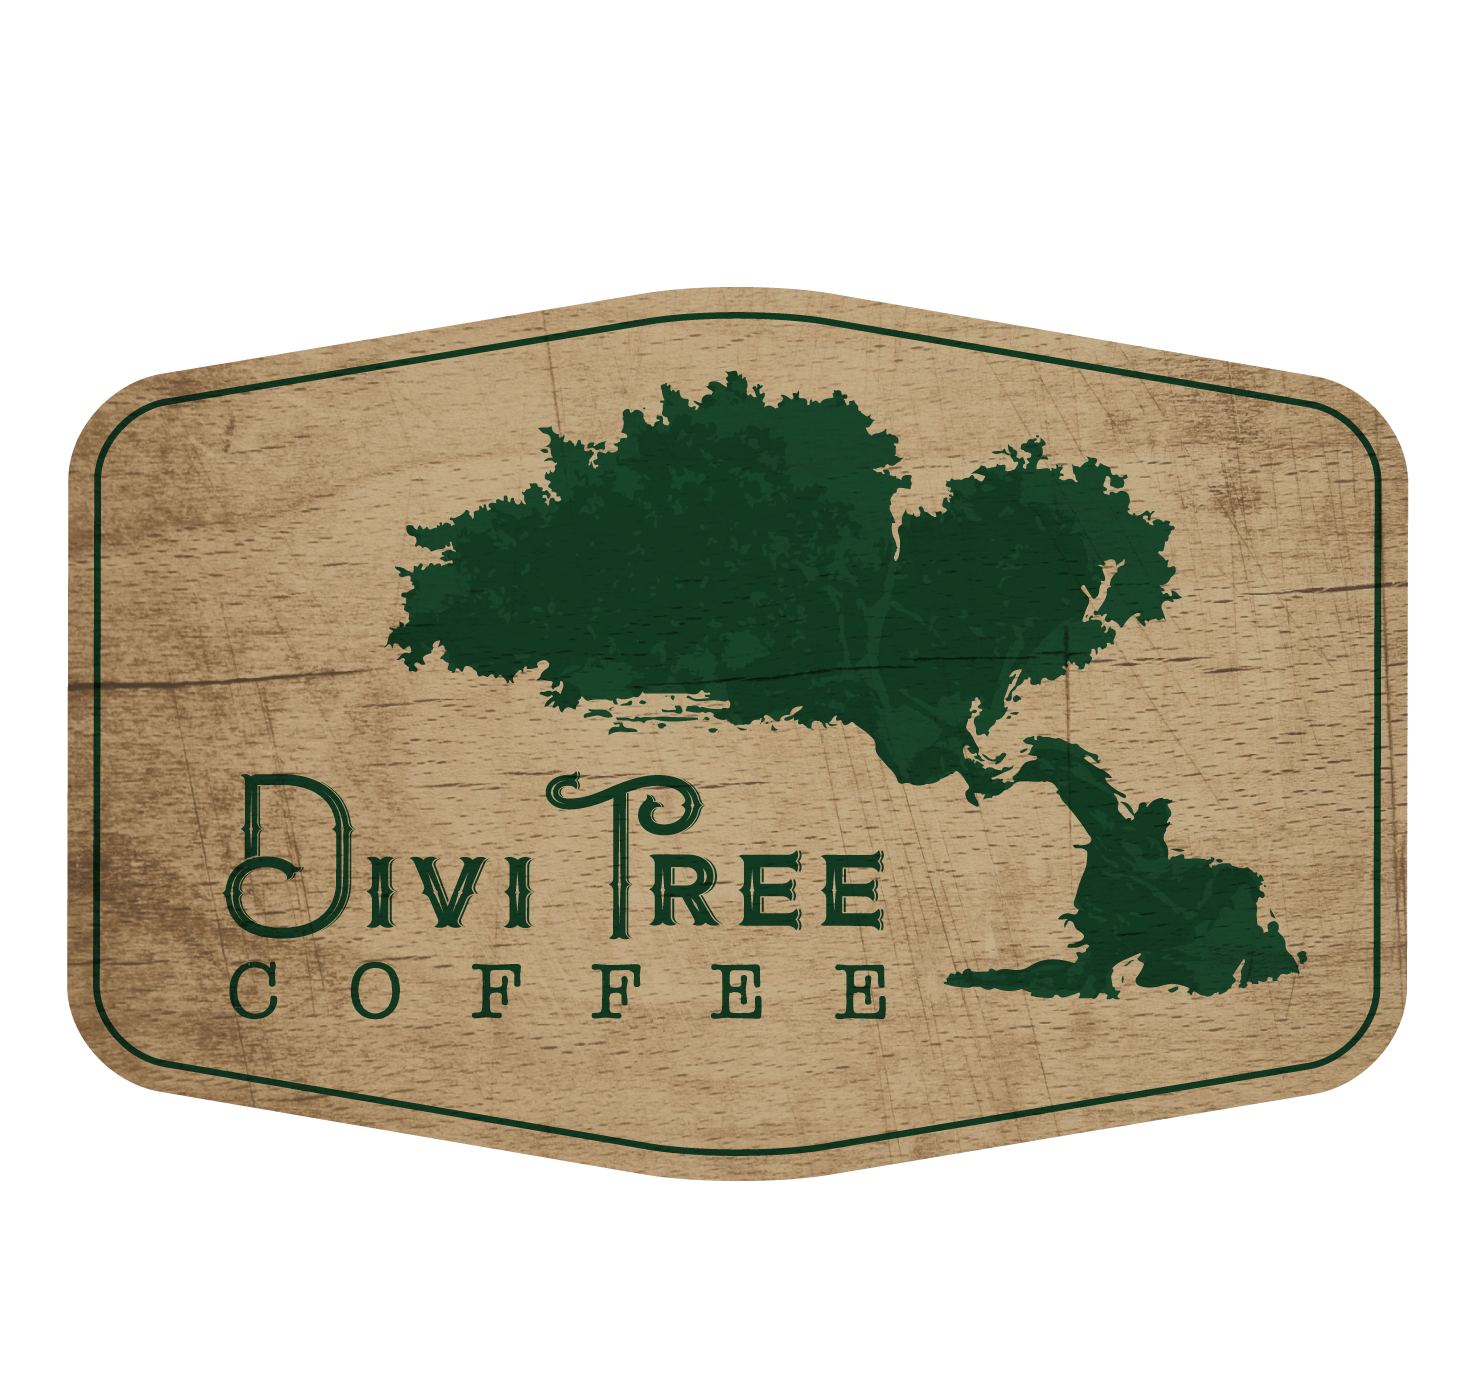 Divi Tree Coffee